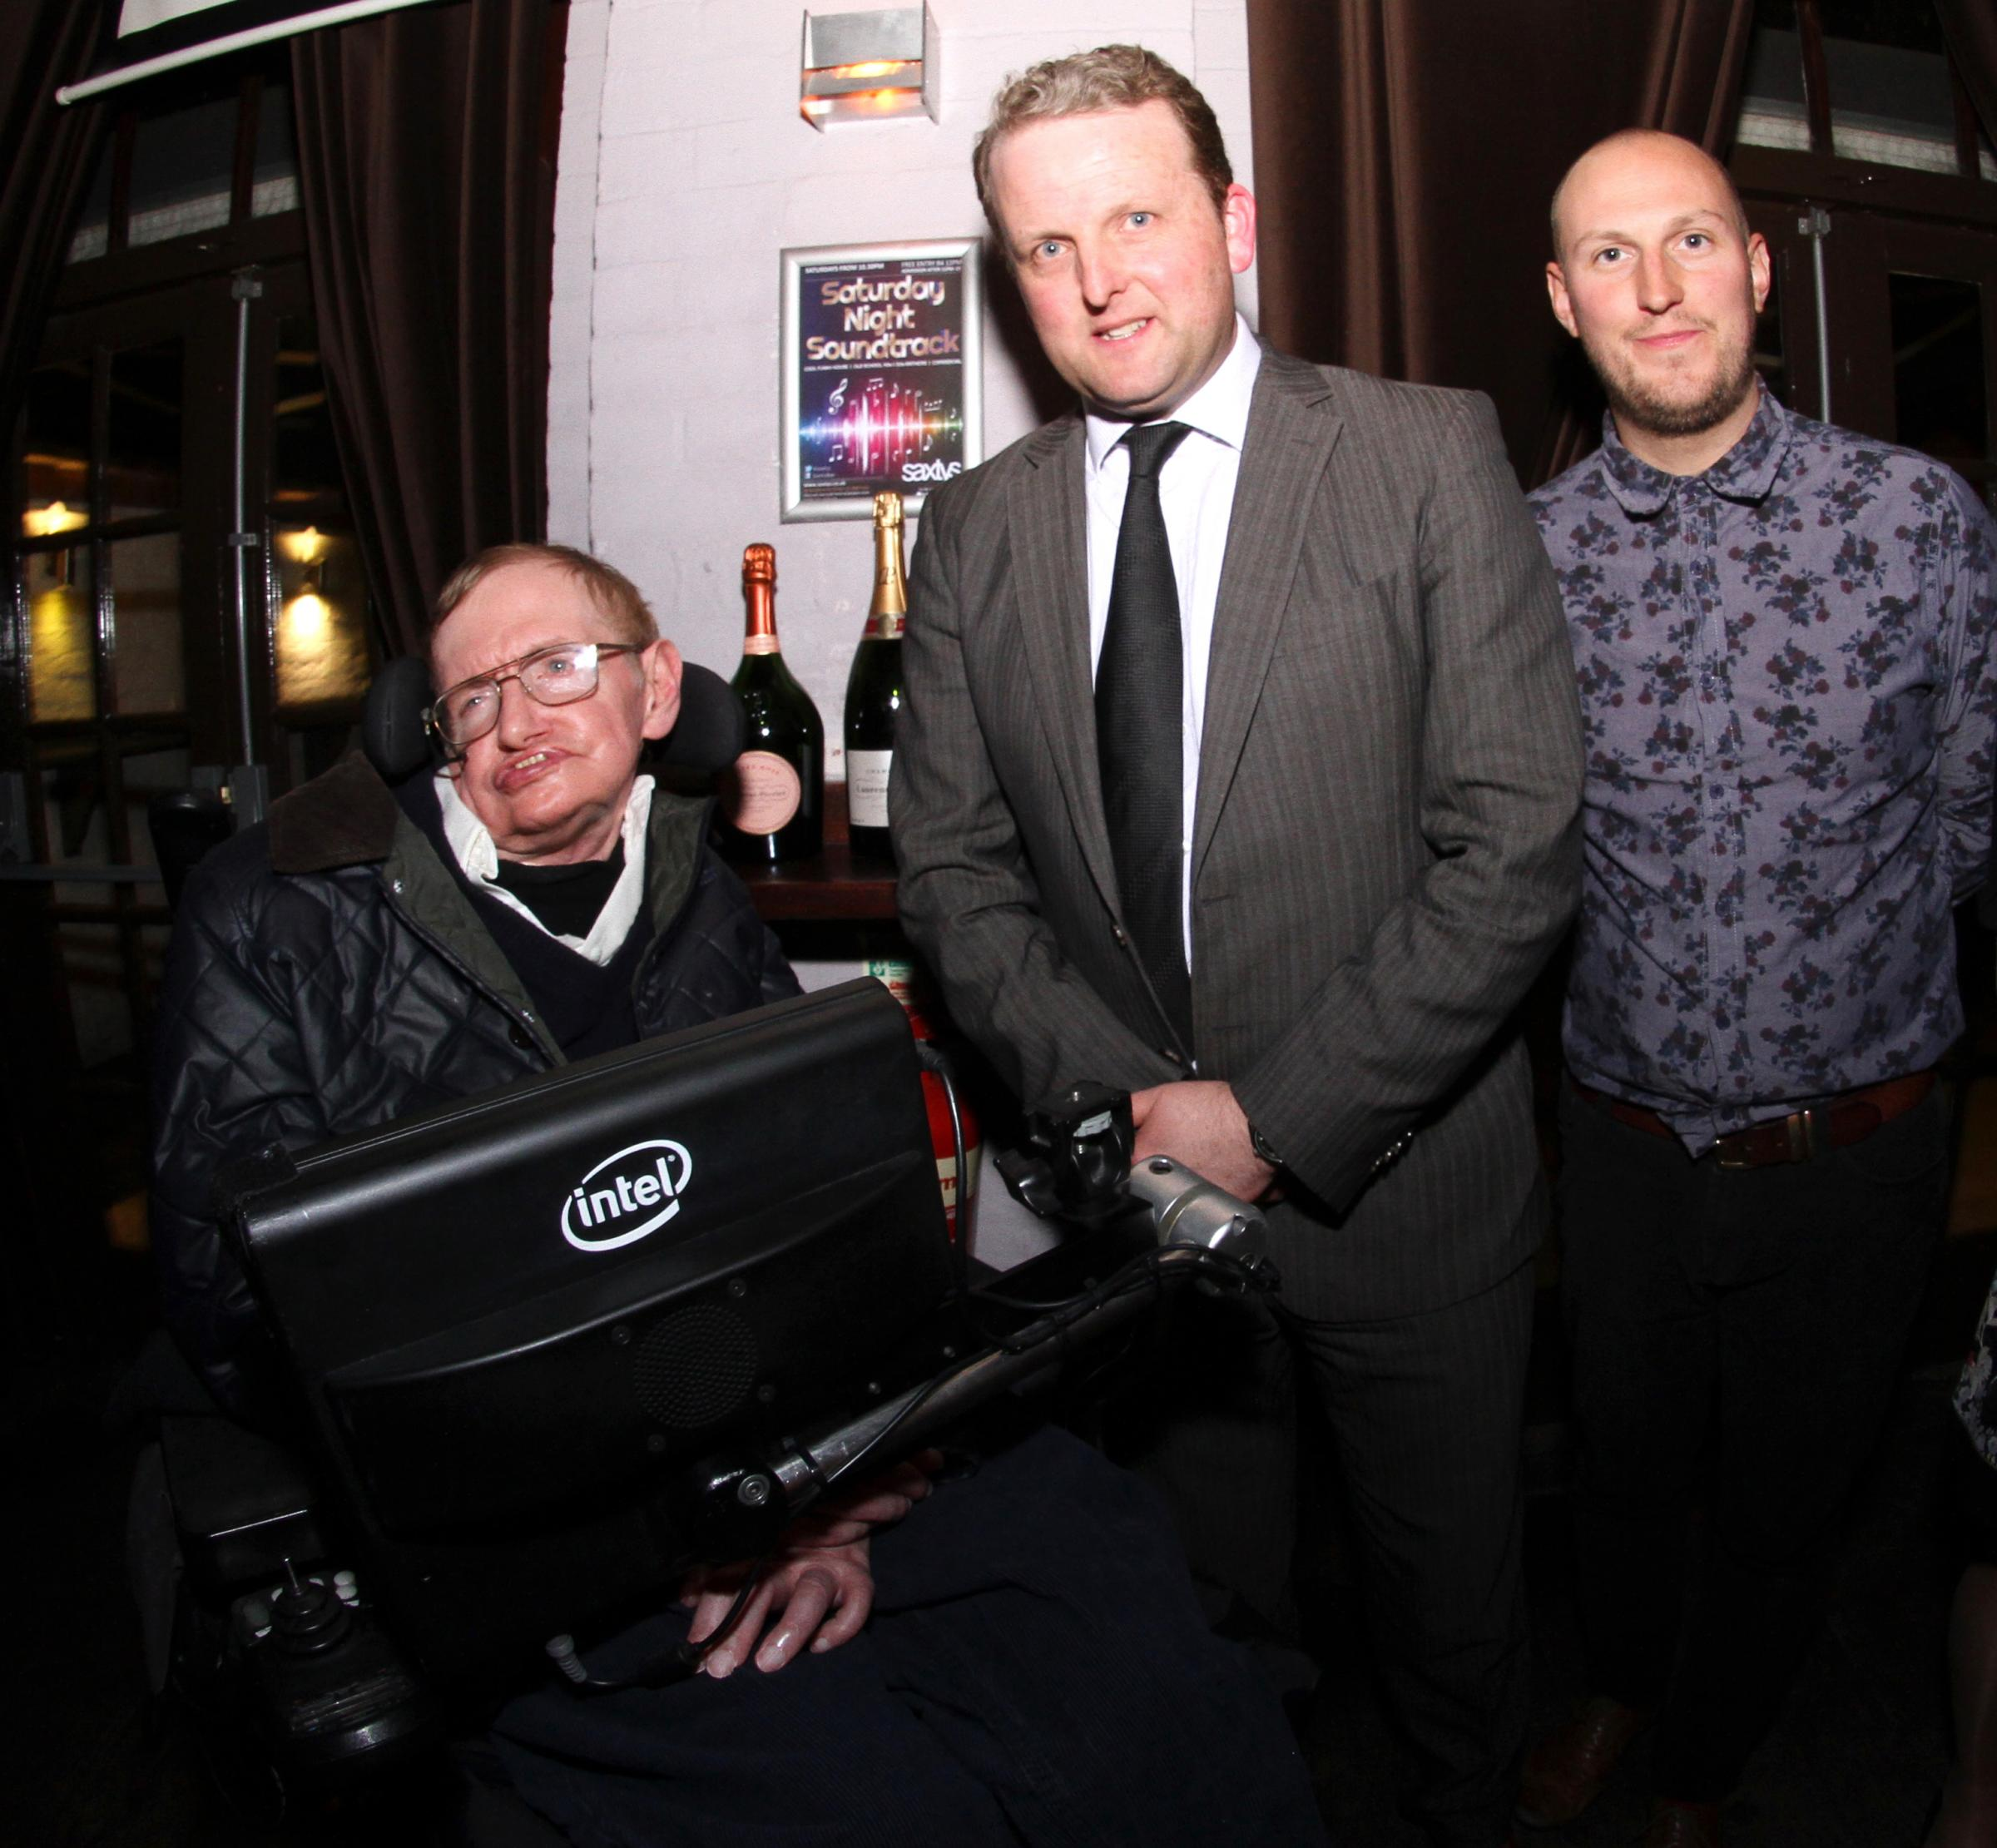 Stephen Hawking with Saxtys owner Edward Symonds (middle) and general manager Joe Williams (right)